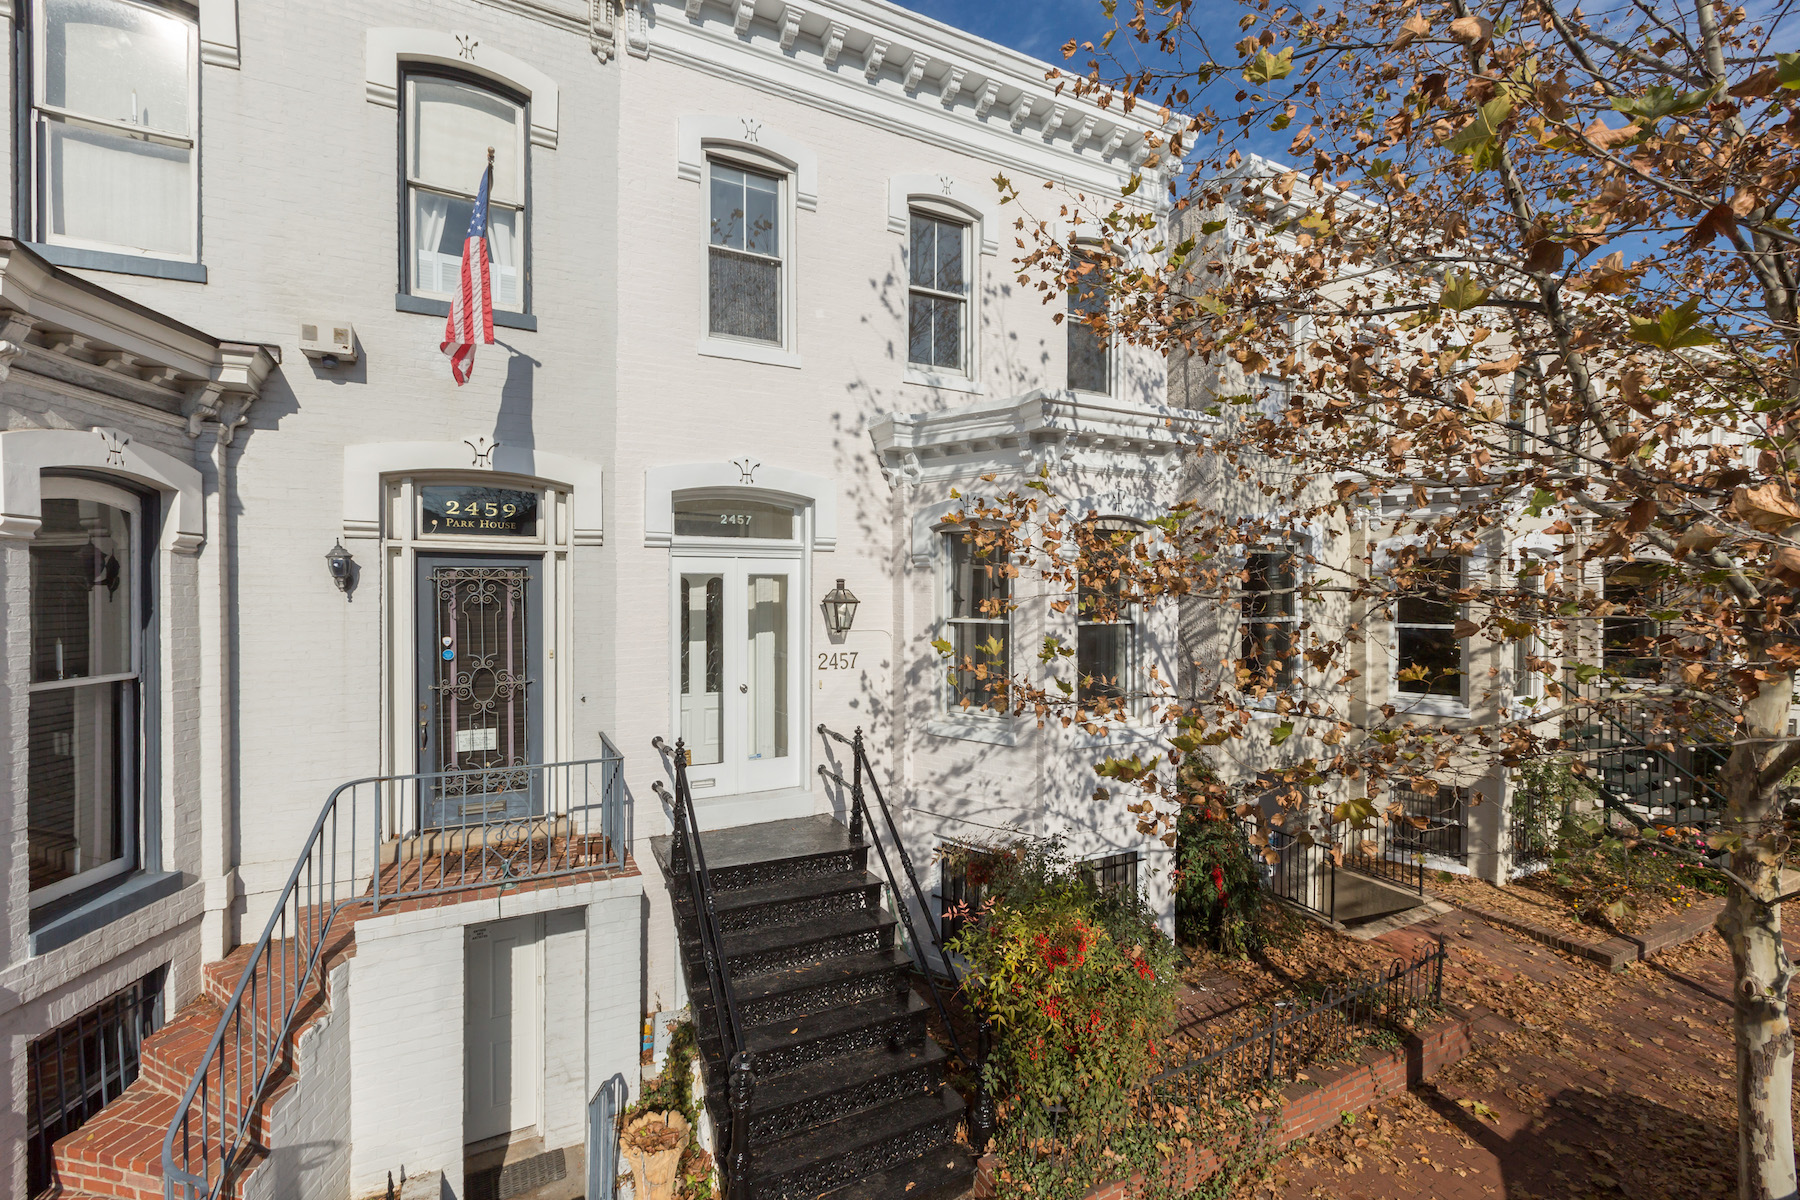 Townhouse for Sale at Georgetown 2457 P Street Nw Washington, District Of Columbia 20007 United States